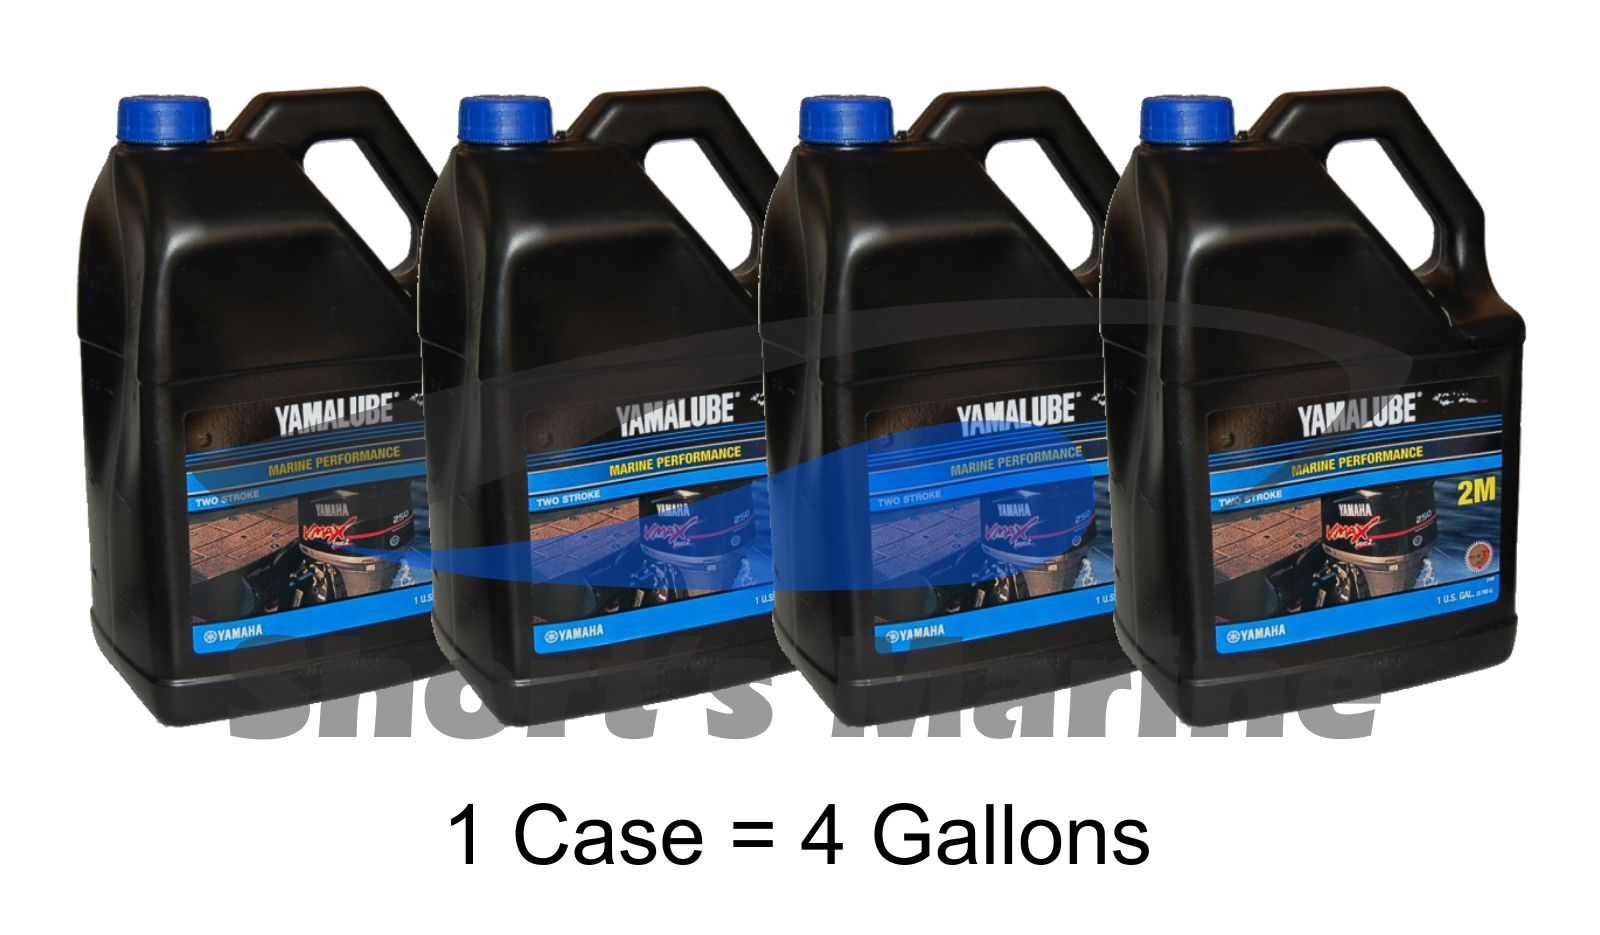 Details about Yamaha Yamalube Outboard Marine Performance 2-Stroke TCW-3  Oil Case of 4 Gallons